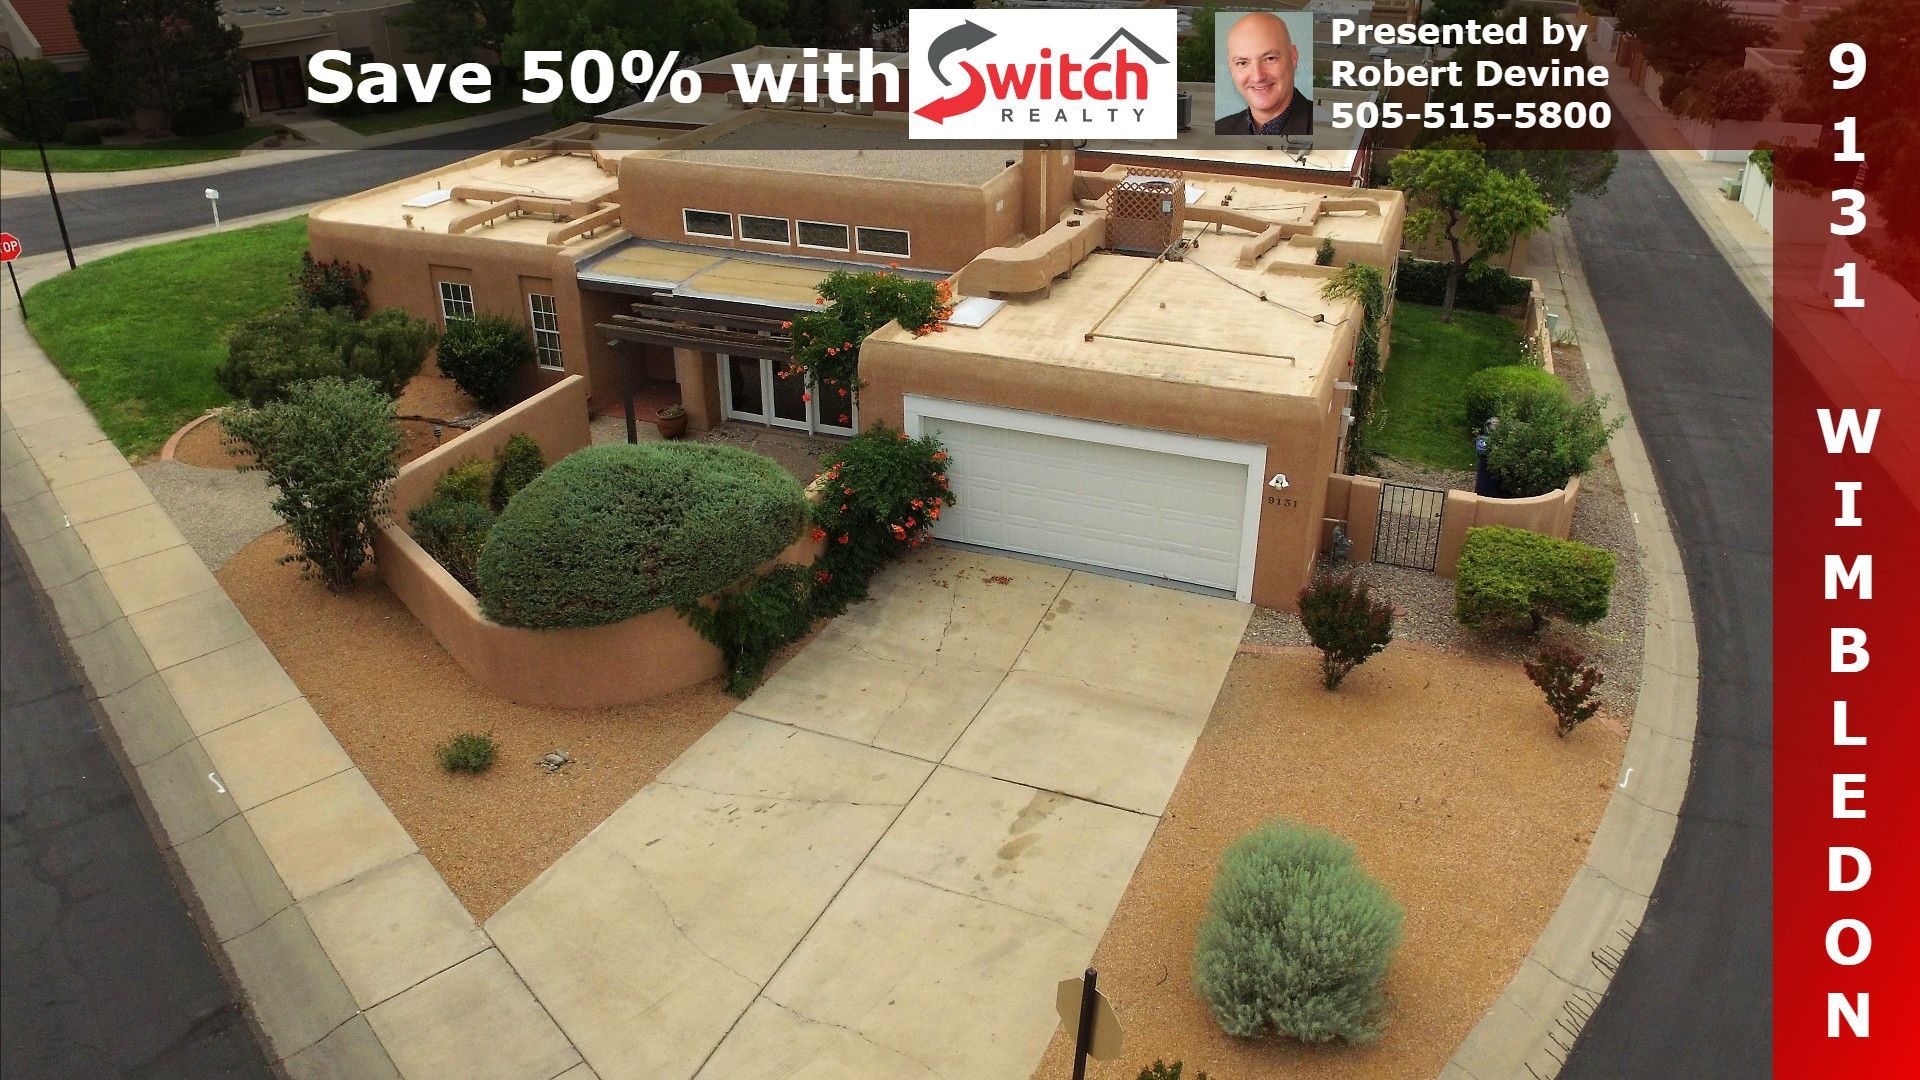 9131 Wimbledon Dr NE, Albuquerque, NM 87111 | Trulia